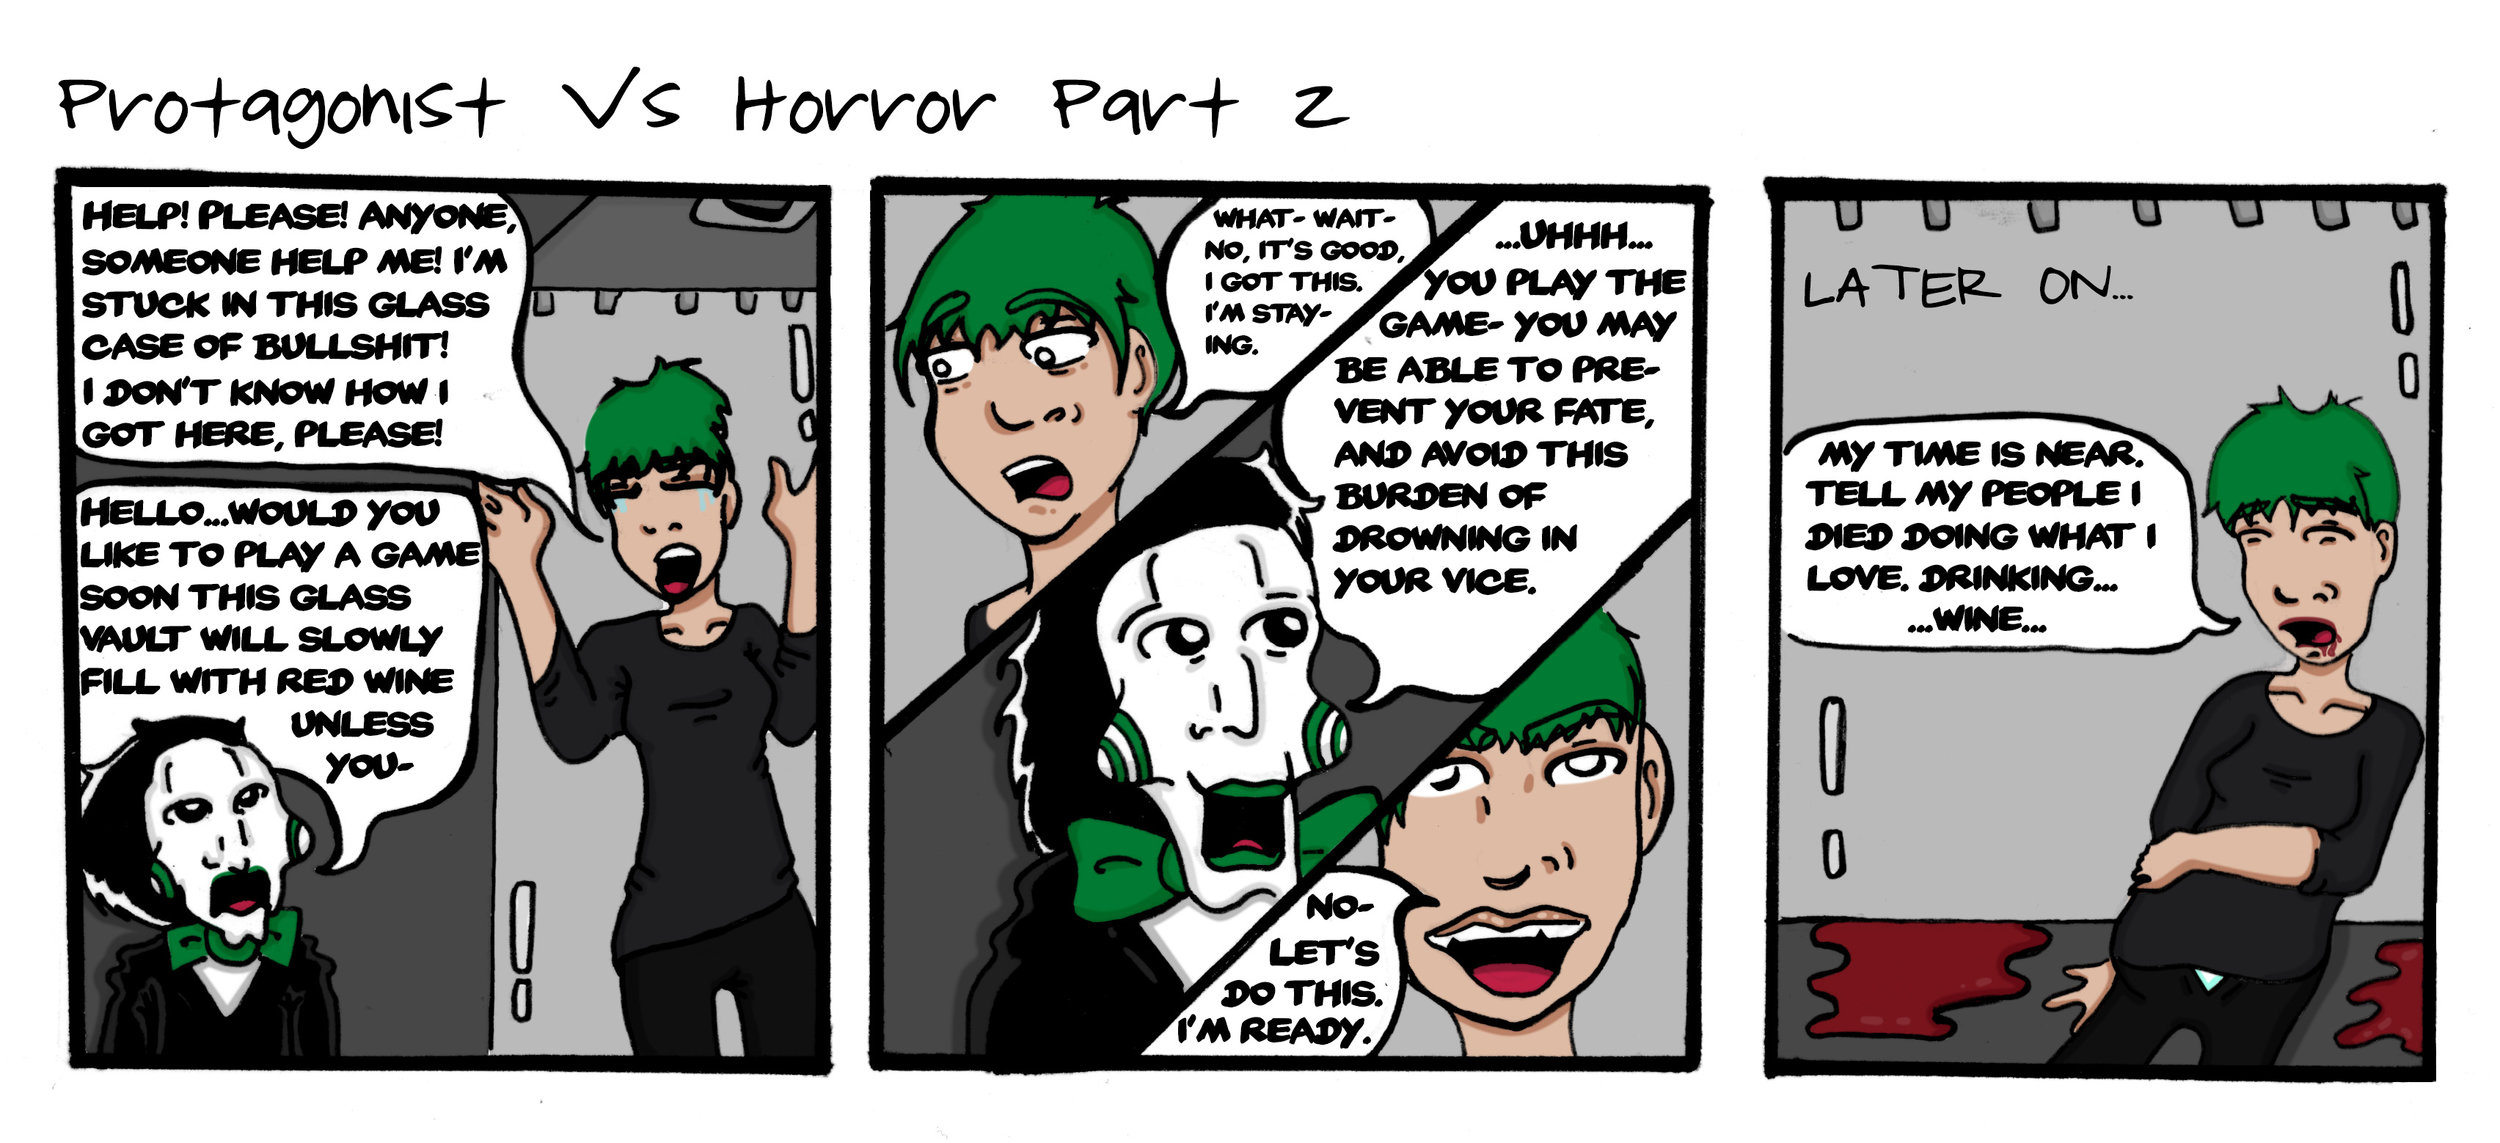 Protagonist Vs Horror Part 2